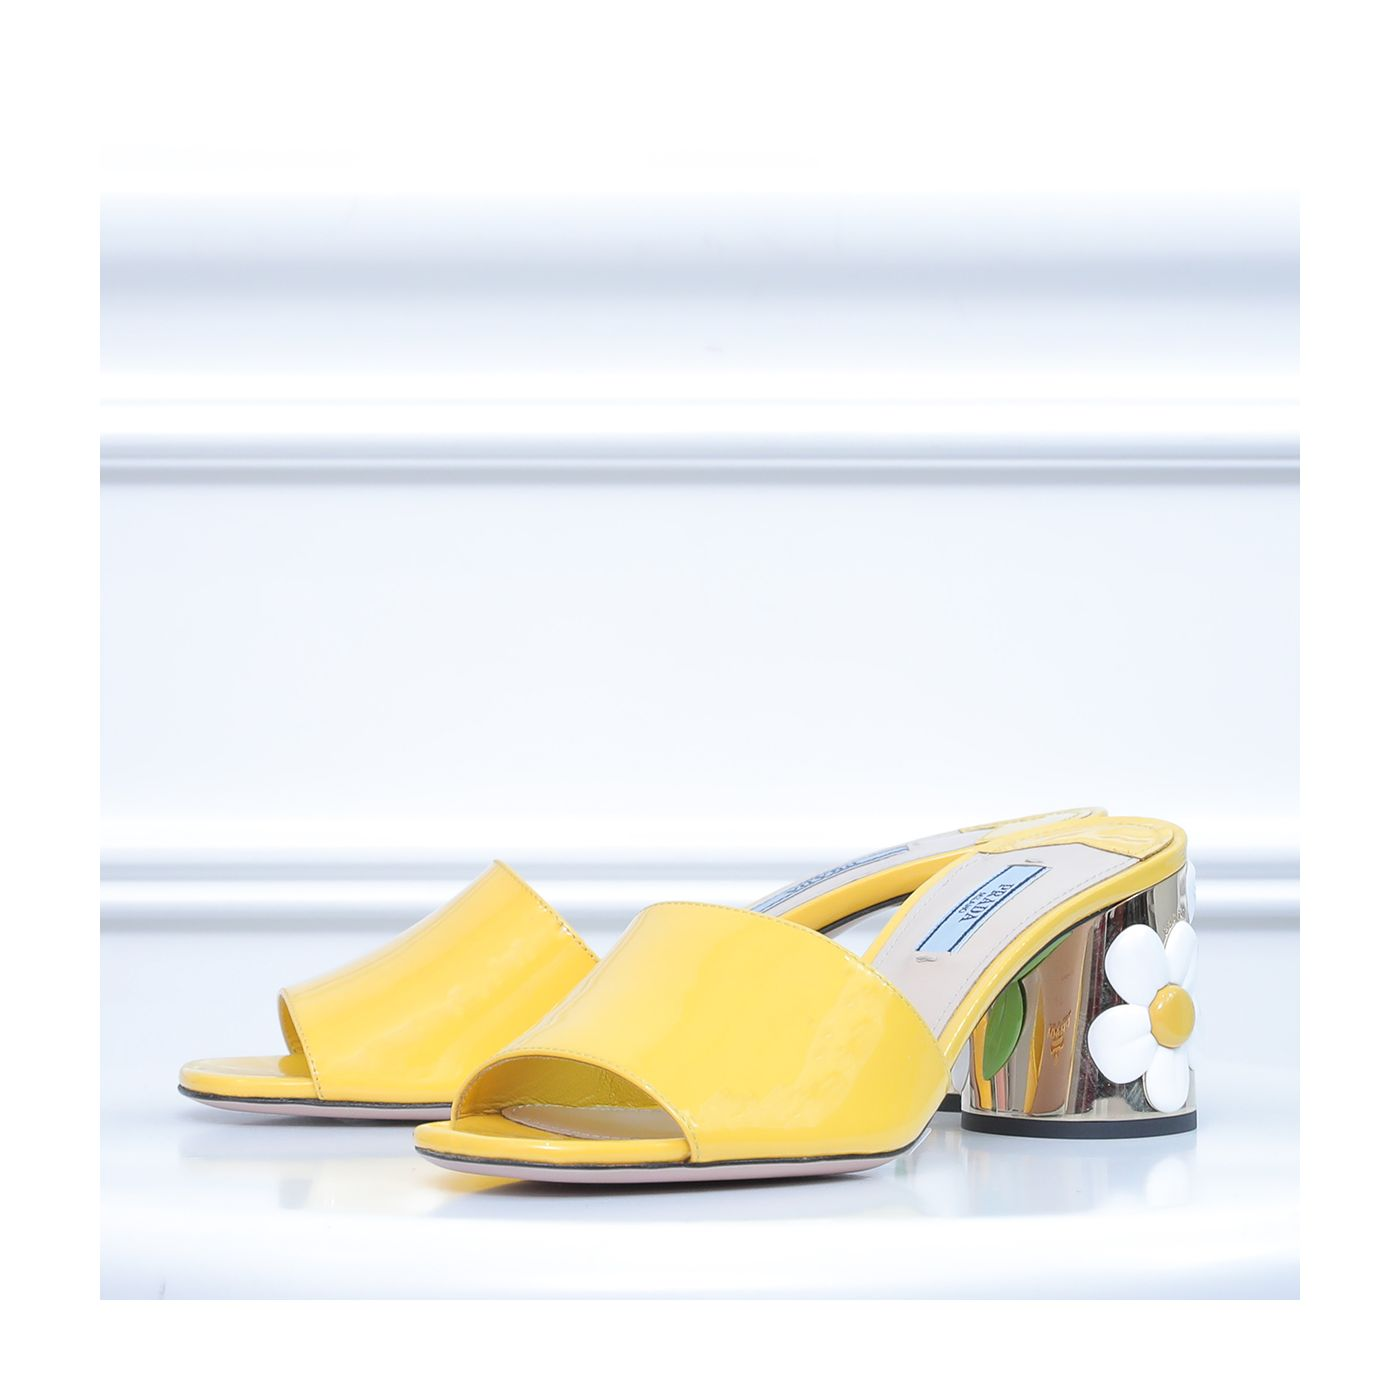 Prada Yellow Flower Heel Slide Sandals 37